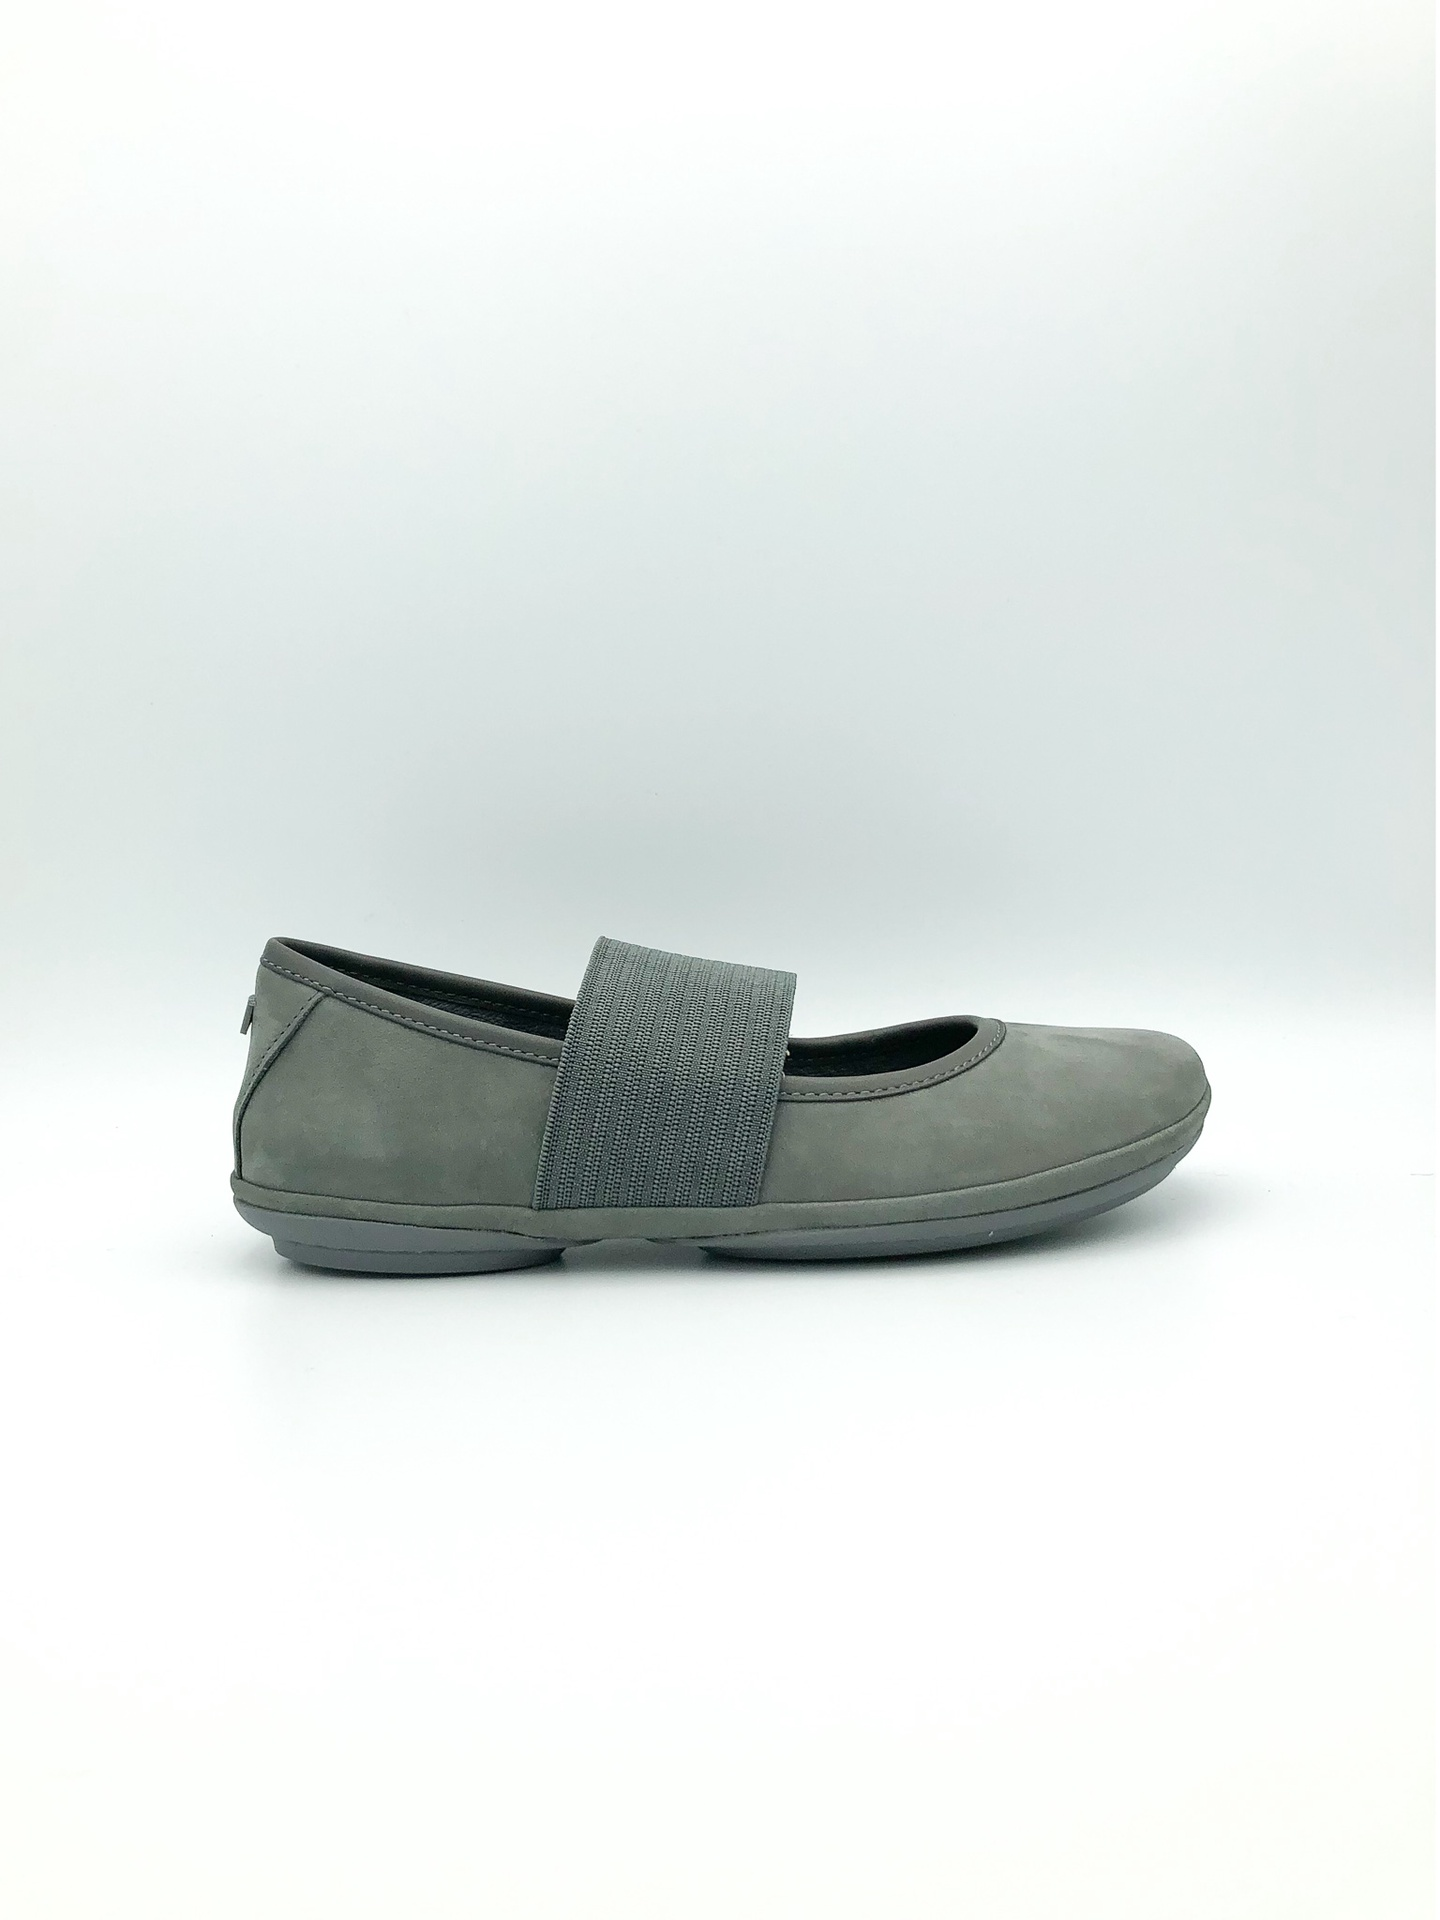 CAMPER - RIGHT NINA IN GREY SUEDE 21595-130